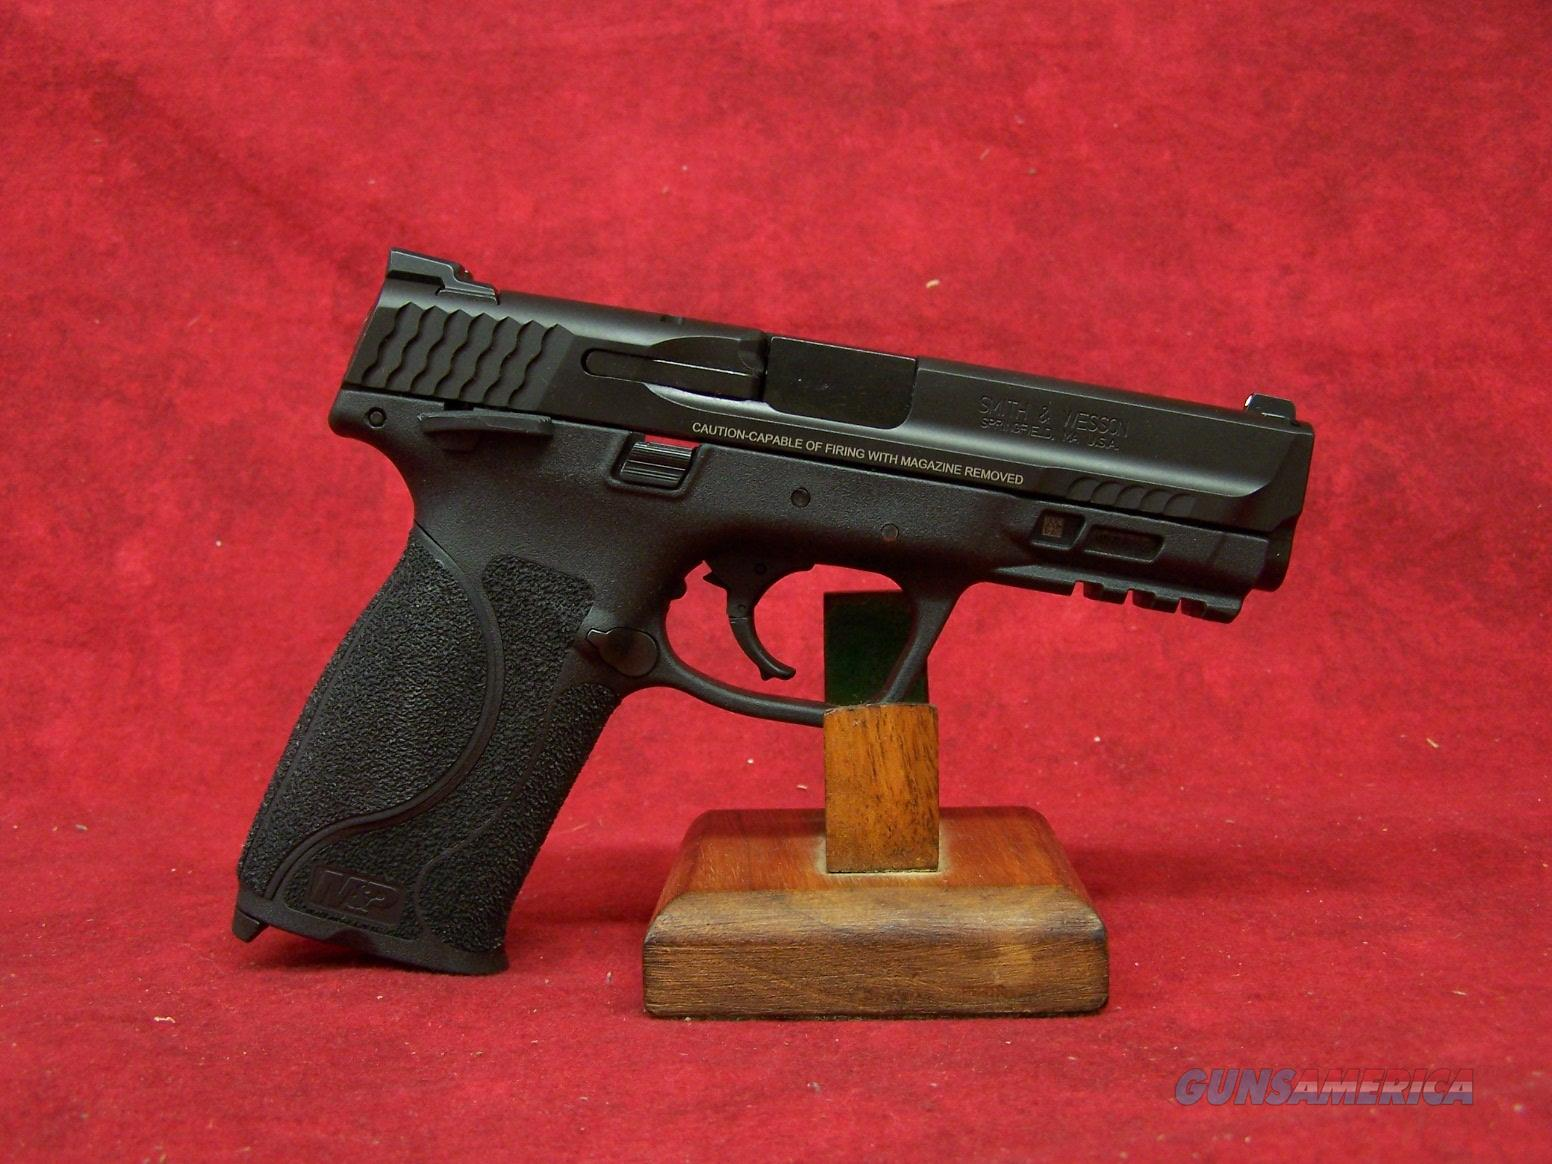 Smith & Wesson M&P9 M2.0 Striker Fire 9mm 4.25 Inch Barrel (11524)  Guns > Pistols > Smith & Wesson Pistols - Autos > Polymer Frame